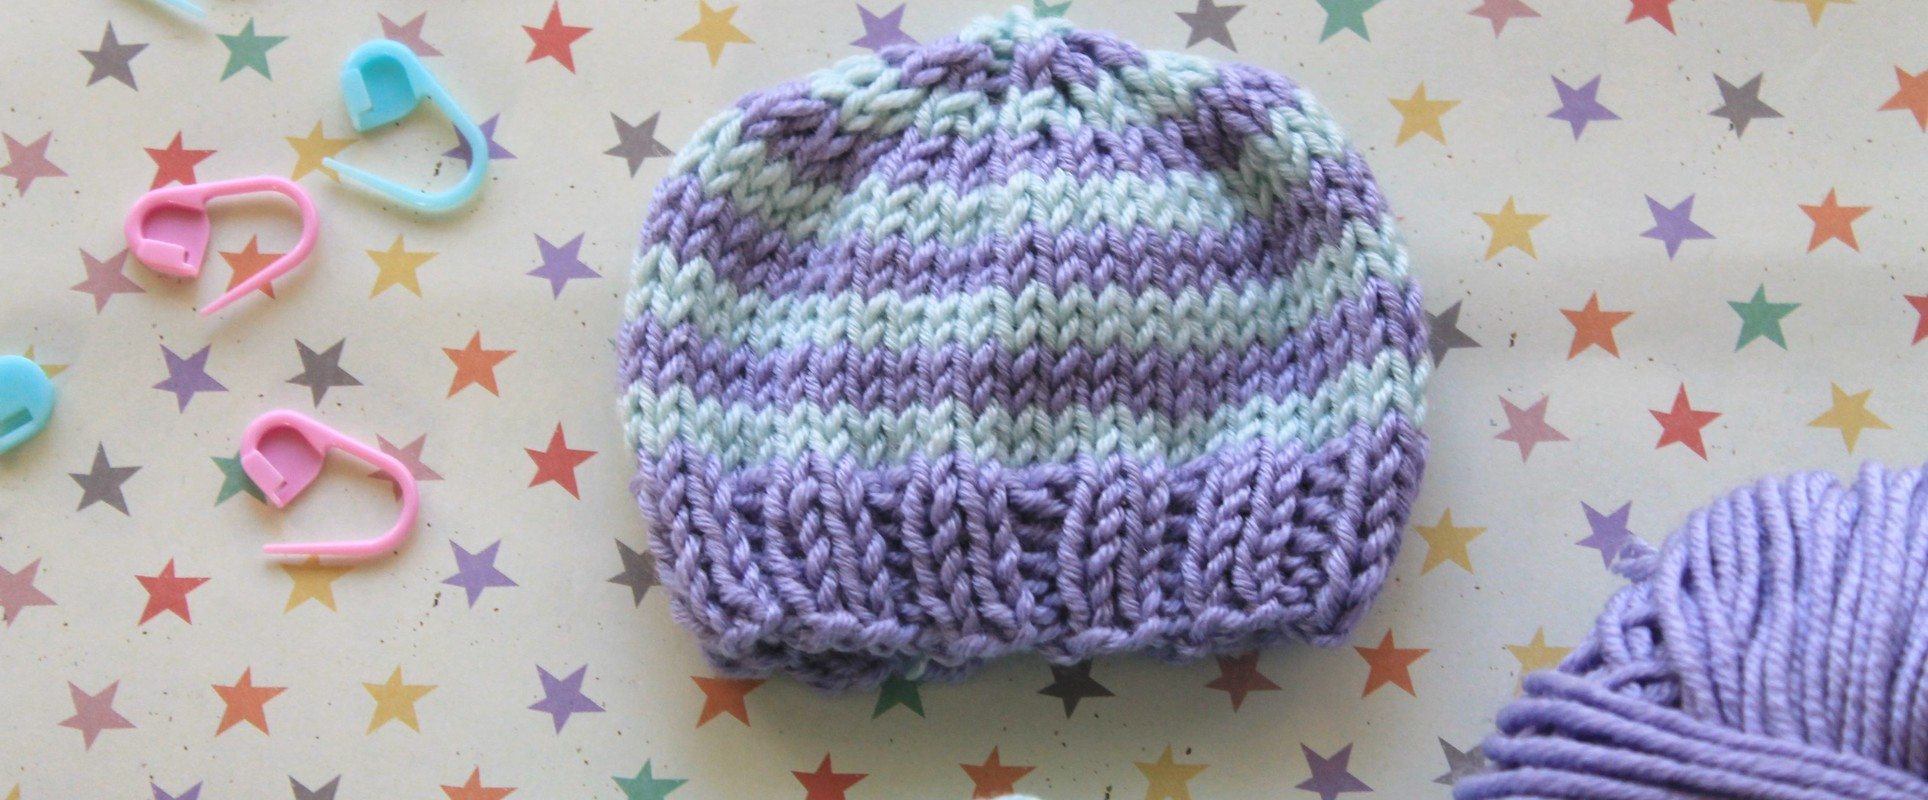 Baby Hat Patterns To Knit Knit Bit The Perfect Preemie Ba Hat Lovecrafts